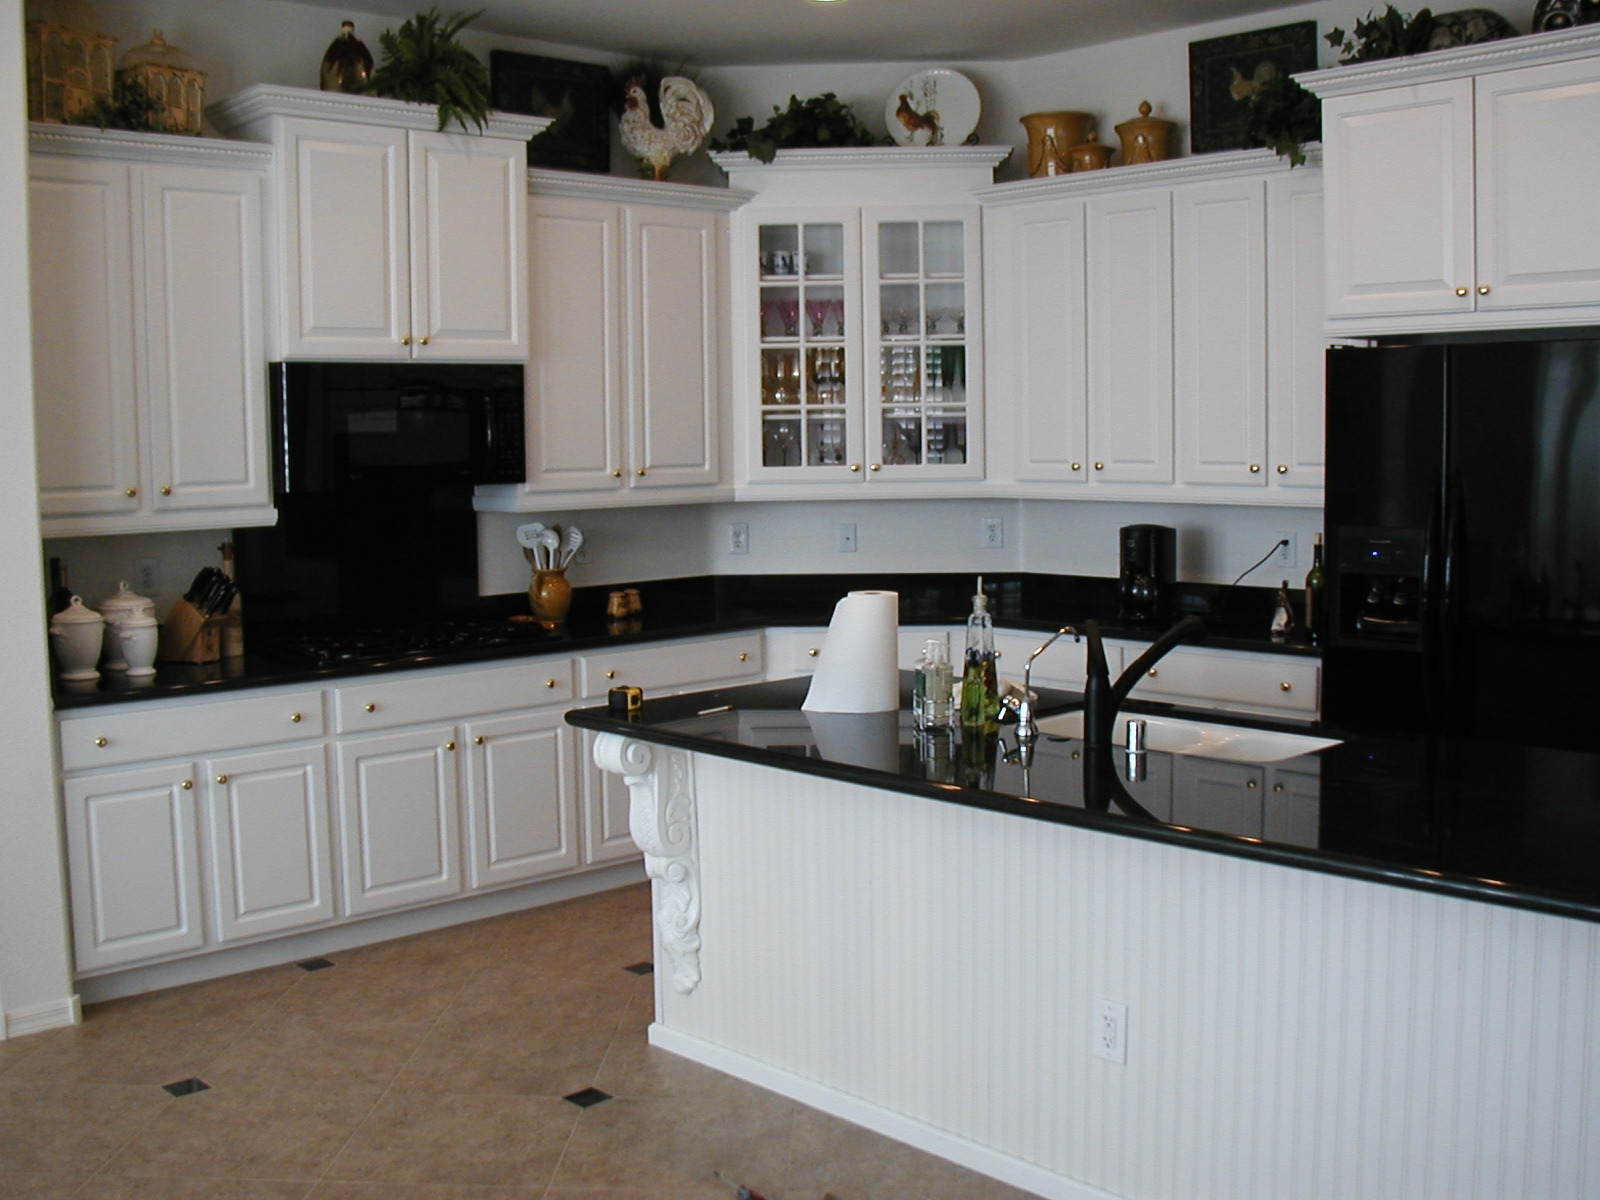 Black kitchen cabinets white appliances kitchen cabinets for Kitchen designs black